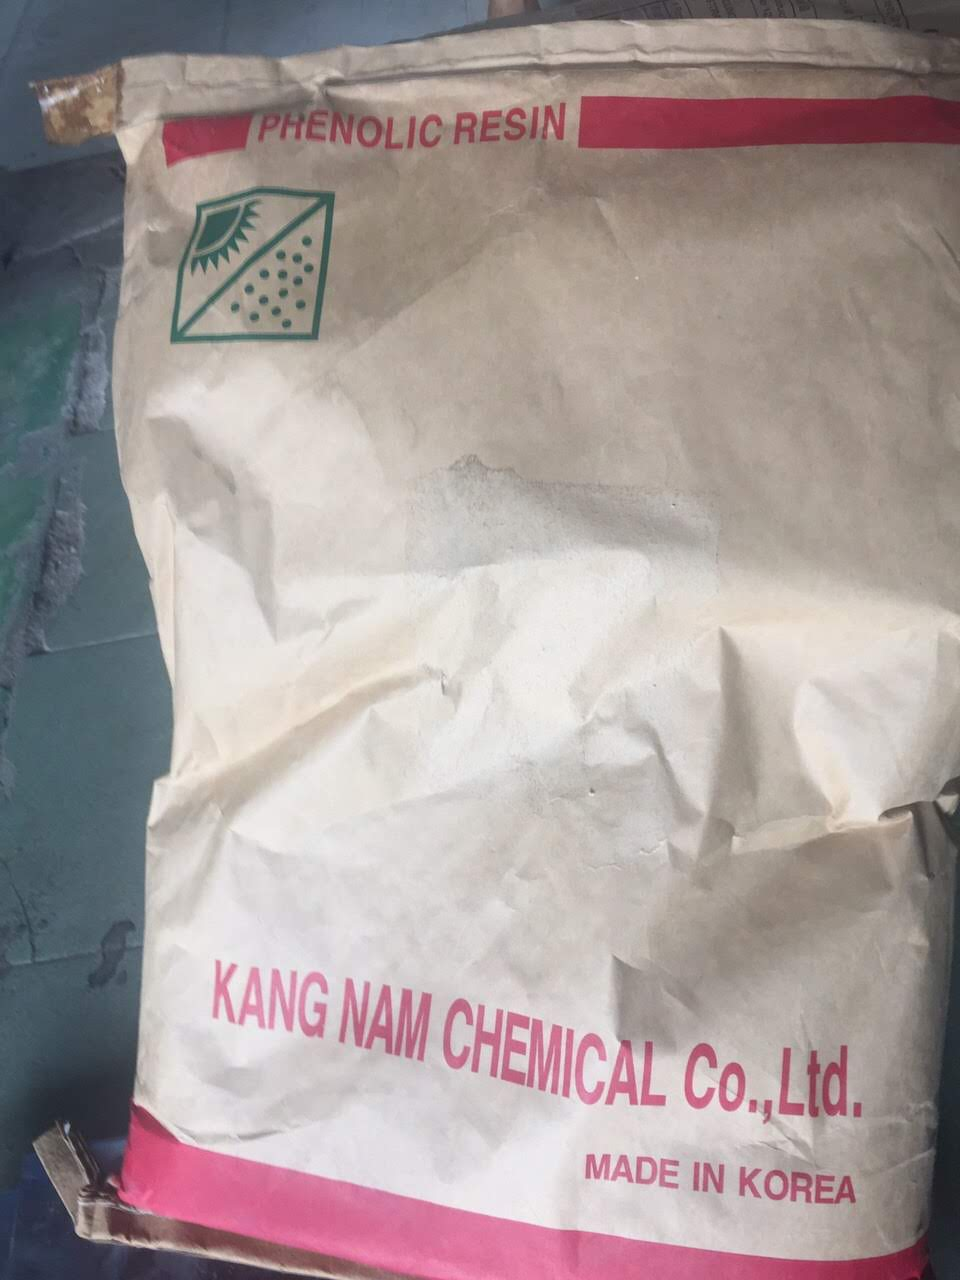 Nhựa Phenolic resin